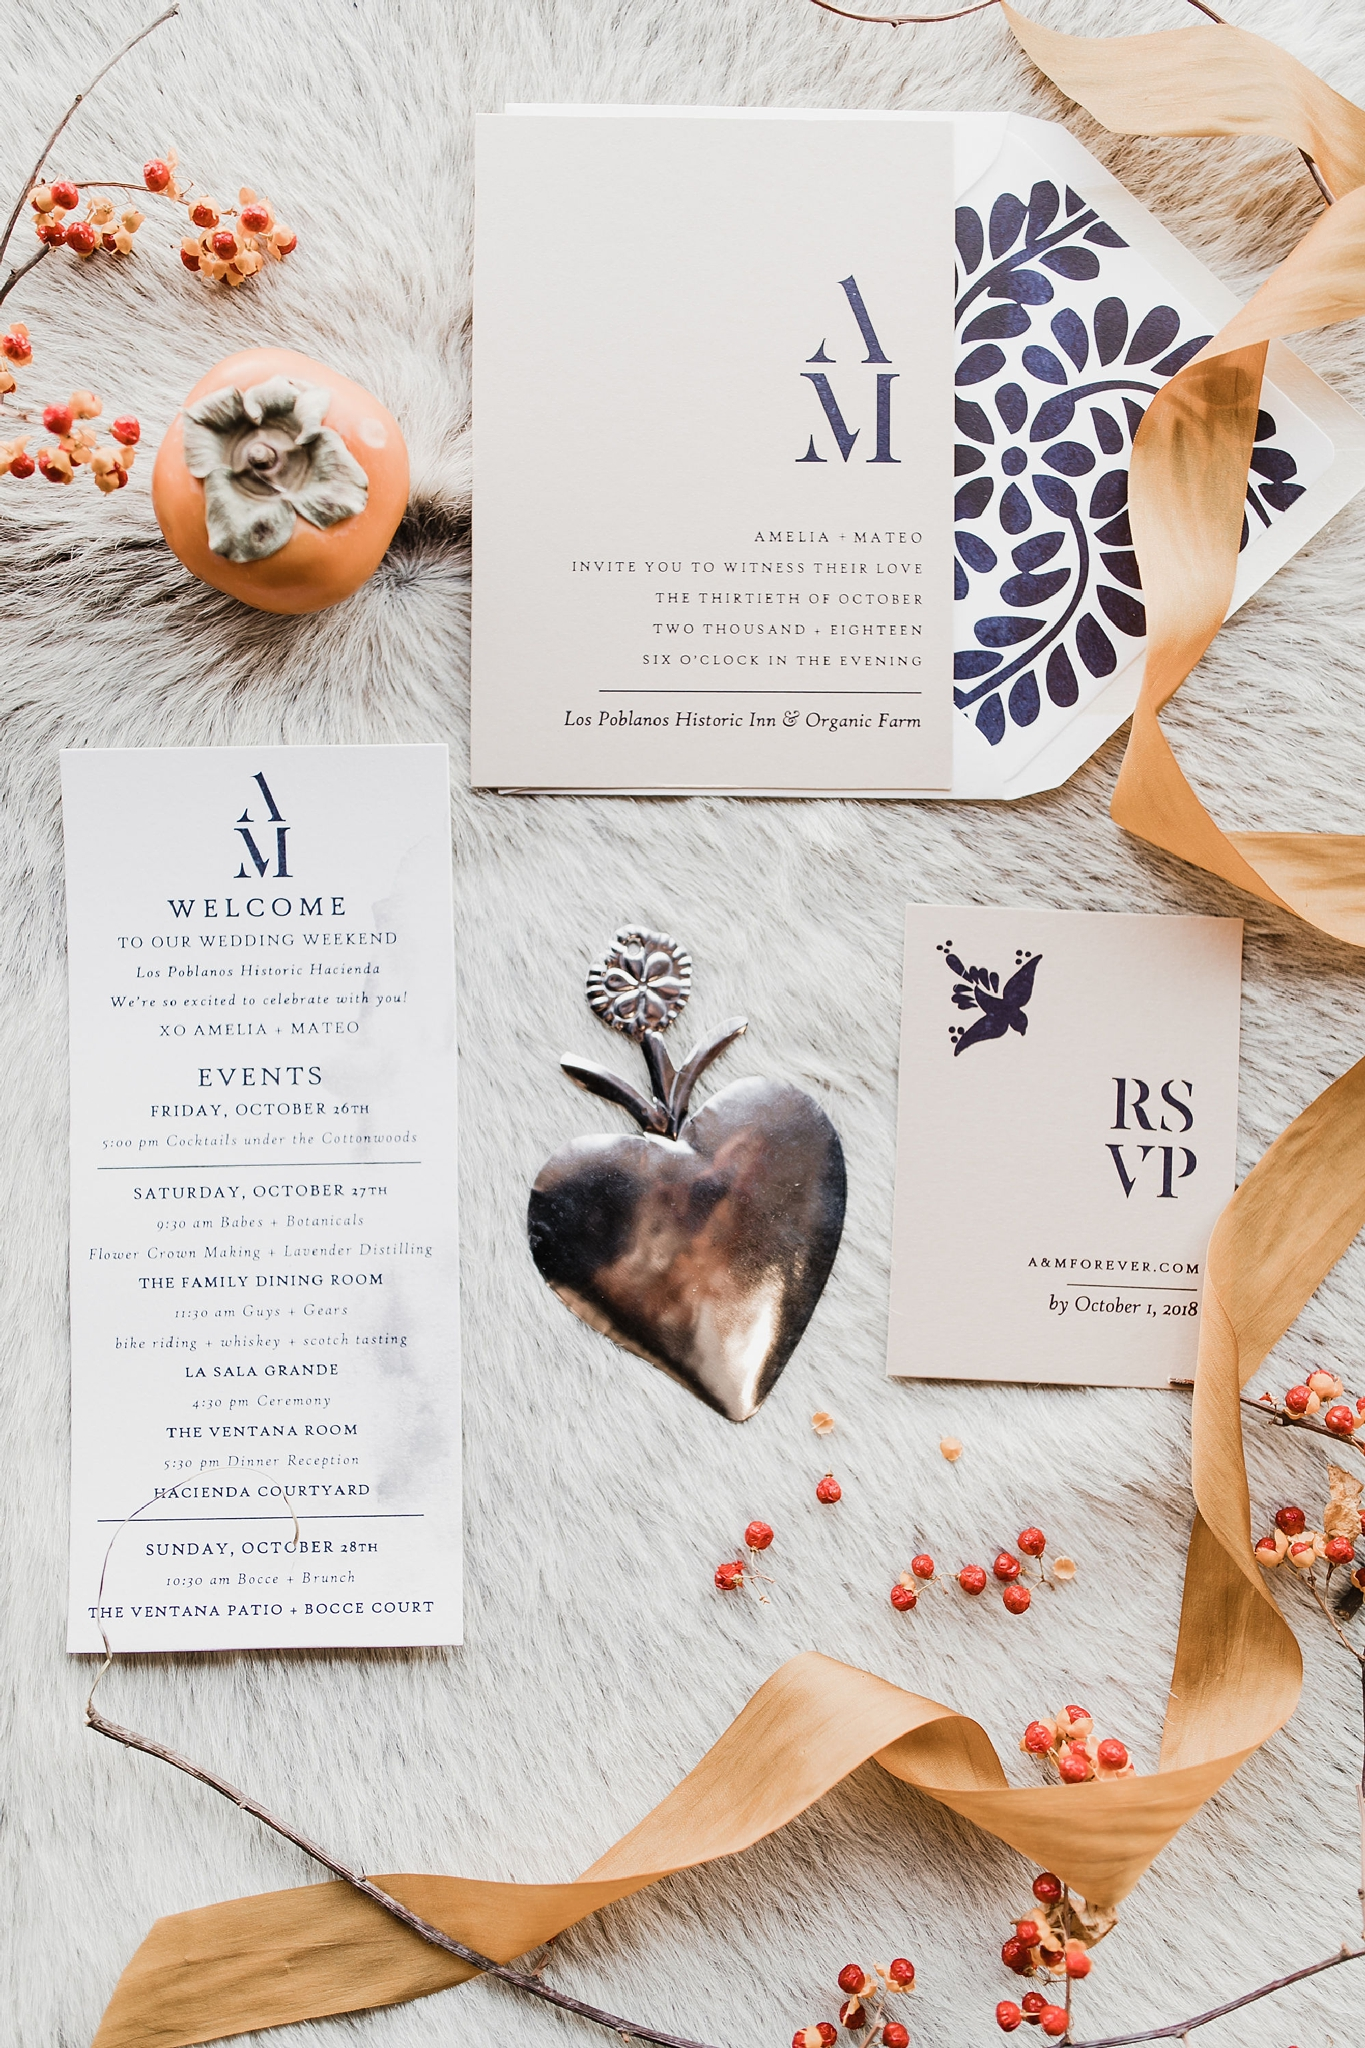 Alicia+lucia+photography+-+albuquerque+wedding+photographer+-+santa+fe+wedding+photography+-+new+mexico+wedding+photographer+-+new+mexico+wedding+-+wedding+invitations+-+invitation+suite+-+wedding+inspo_0006.jpg